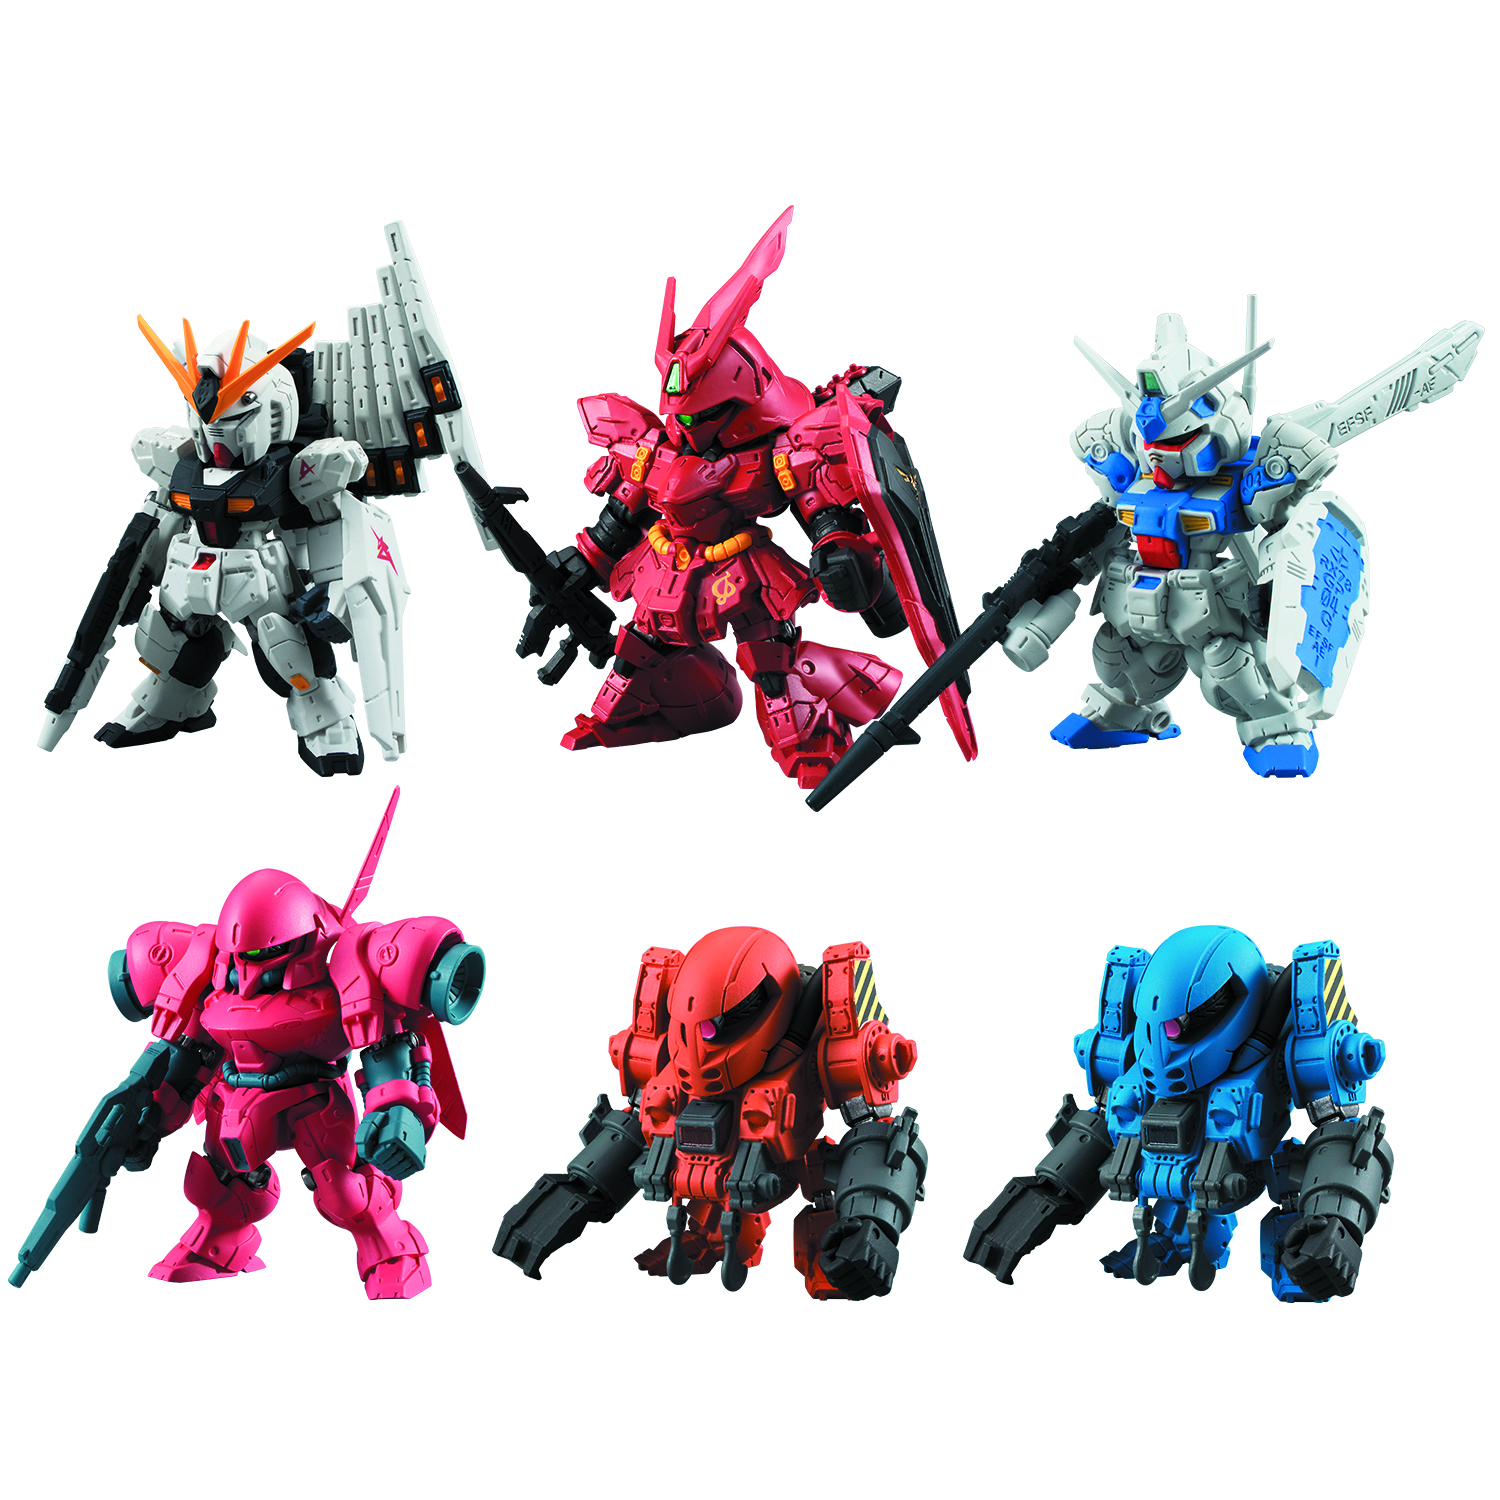 FW GUNDAM CONVERGE #1 TRAD FIG 10PC ASST